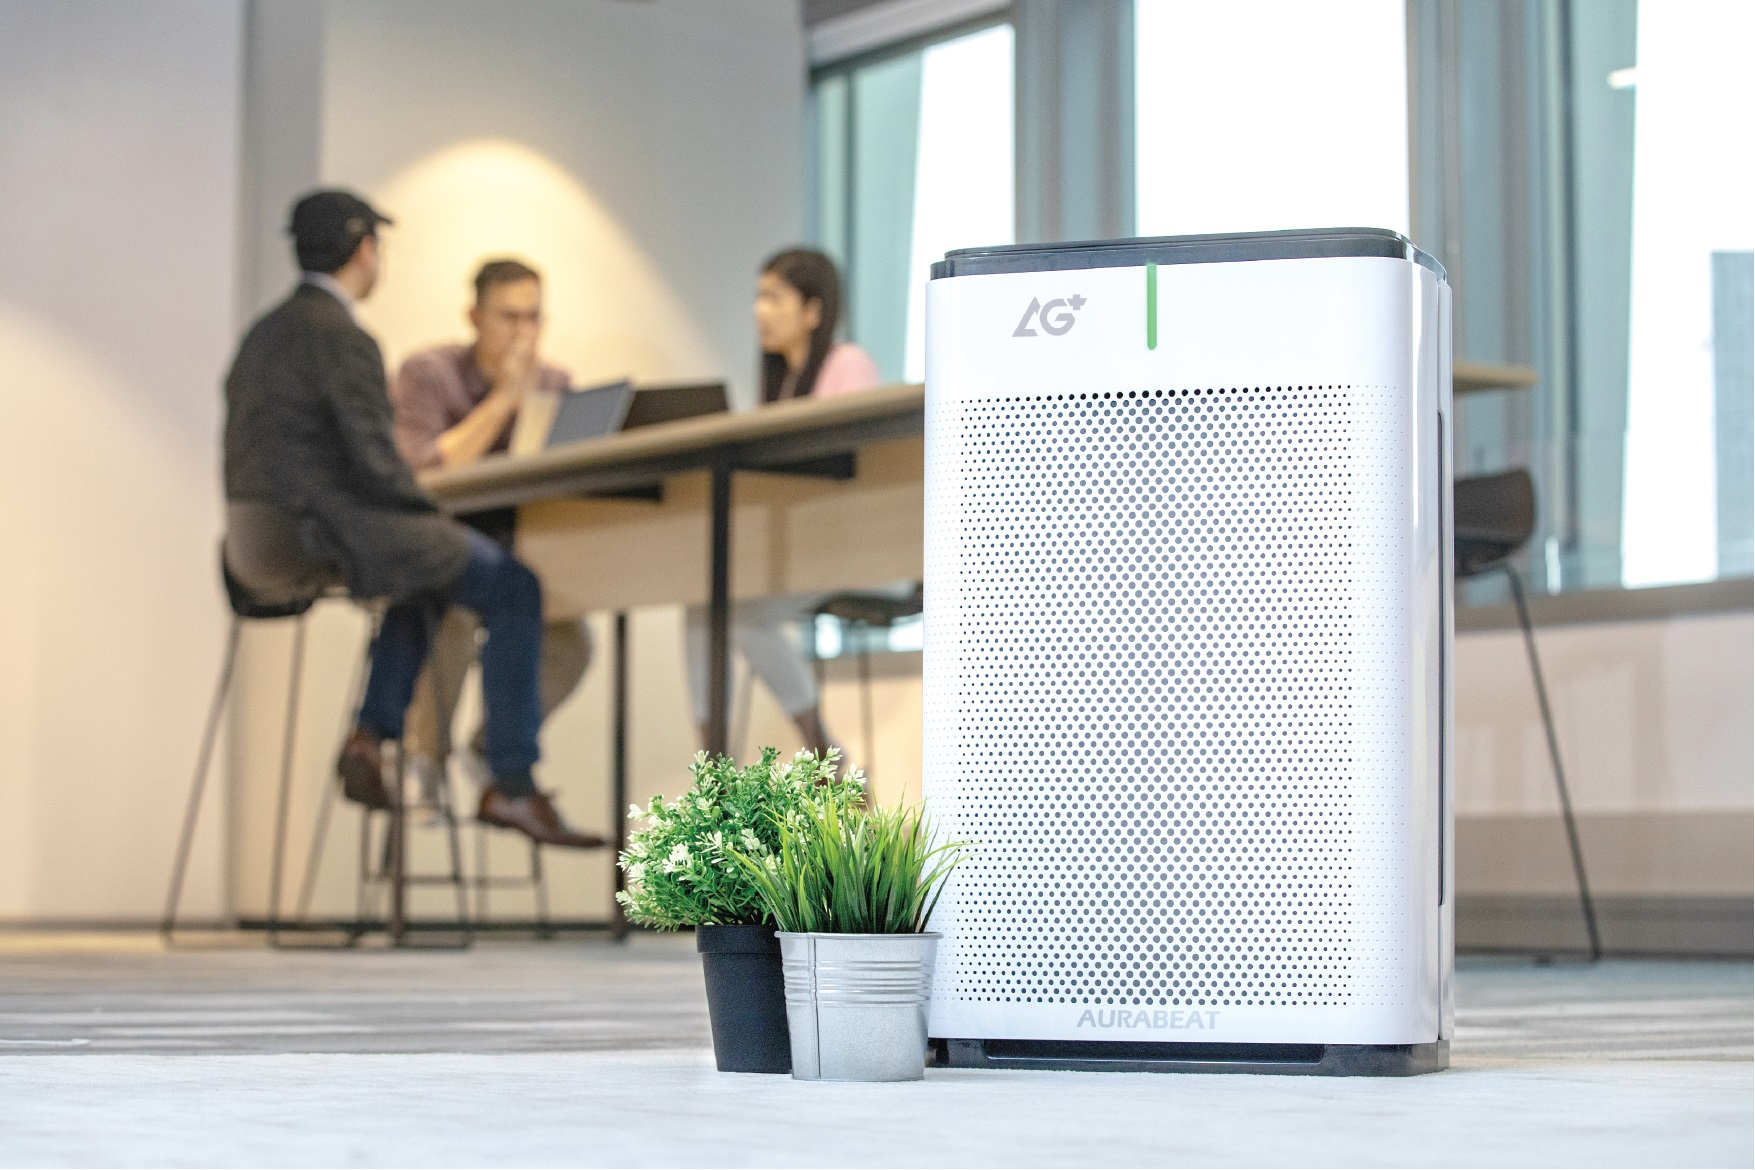 Covid-19: Aurabeat's FDA Approved Air Purifier Reduces All Risks Of Infection And Airborne Transmission